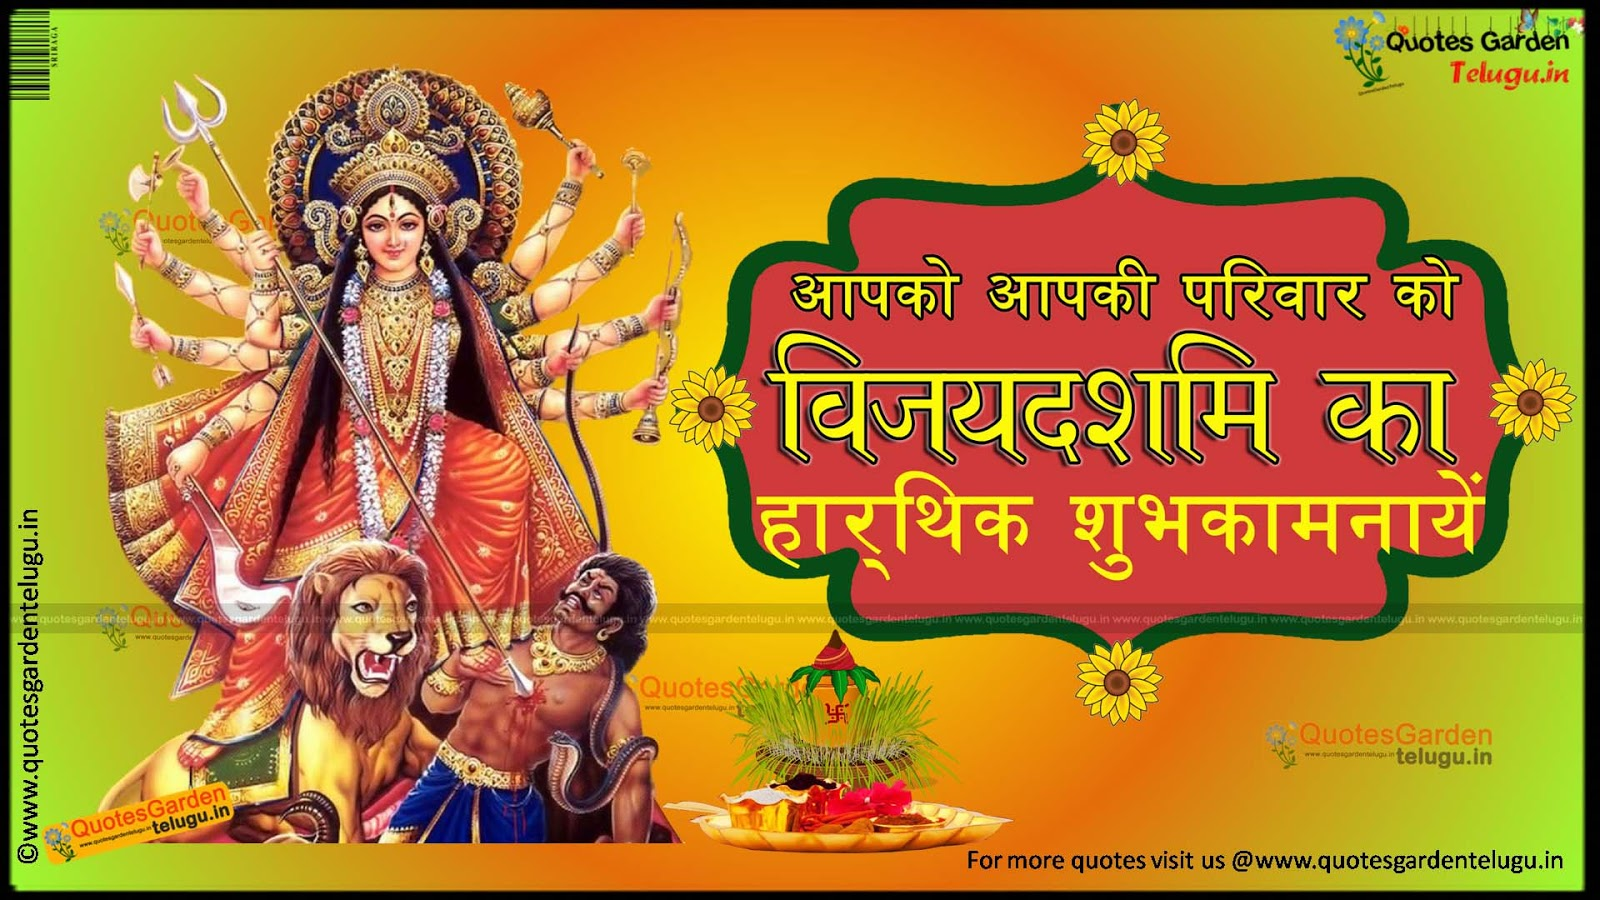 Happy Vijayadashami dussehra Hindi Greetings Quotes wallpapers sms whatsapp  QUOTES GARDEN